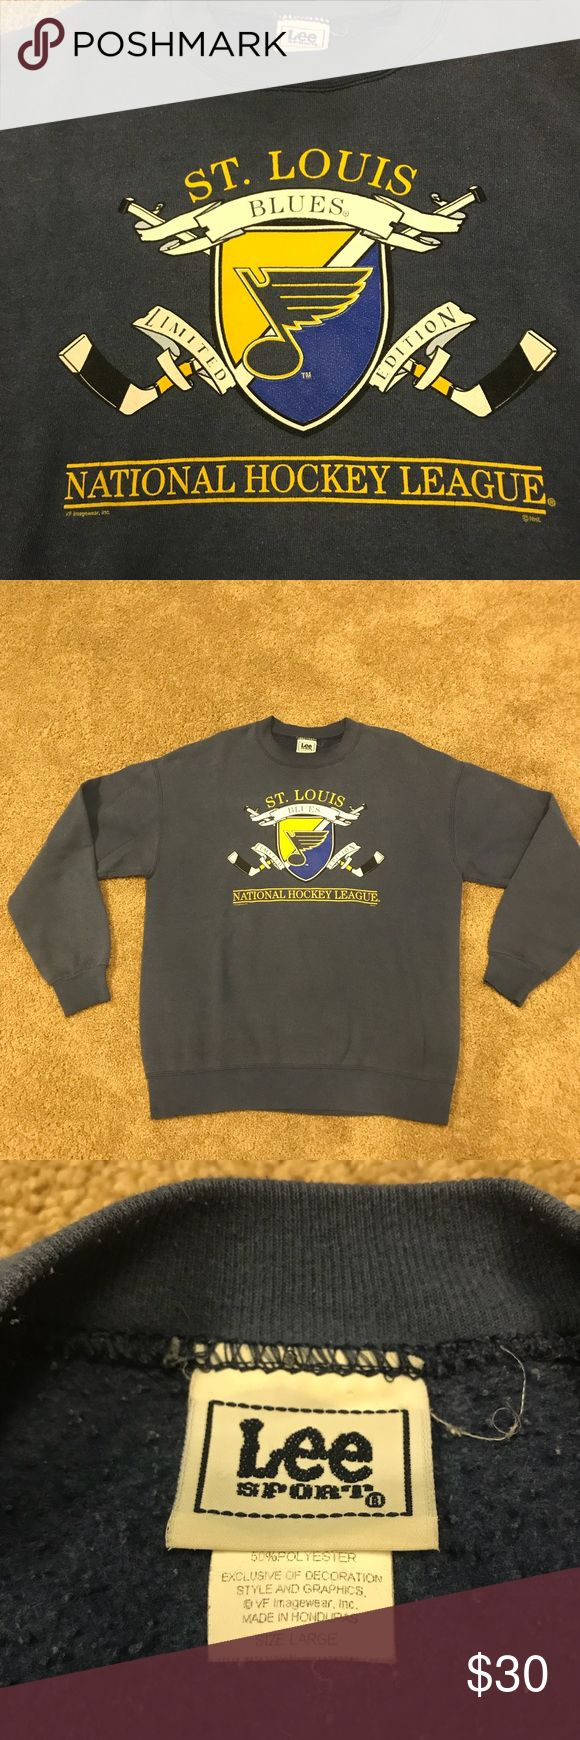 Vintage 90's St. Louis Blues NHL Hockey Sweatshirt vintage 90's Lee Sport Collectors limited edition St. Louis Blues NHL Hockey crewneck. Men's size large. In good condition! Lee Sport Sweaters Crewneck